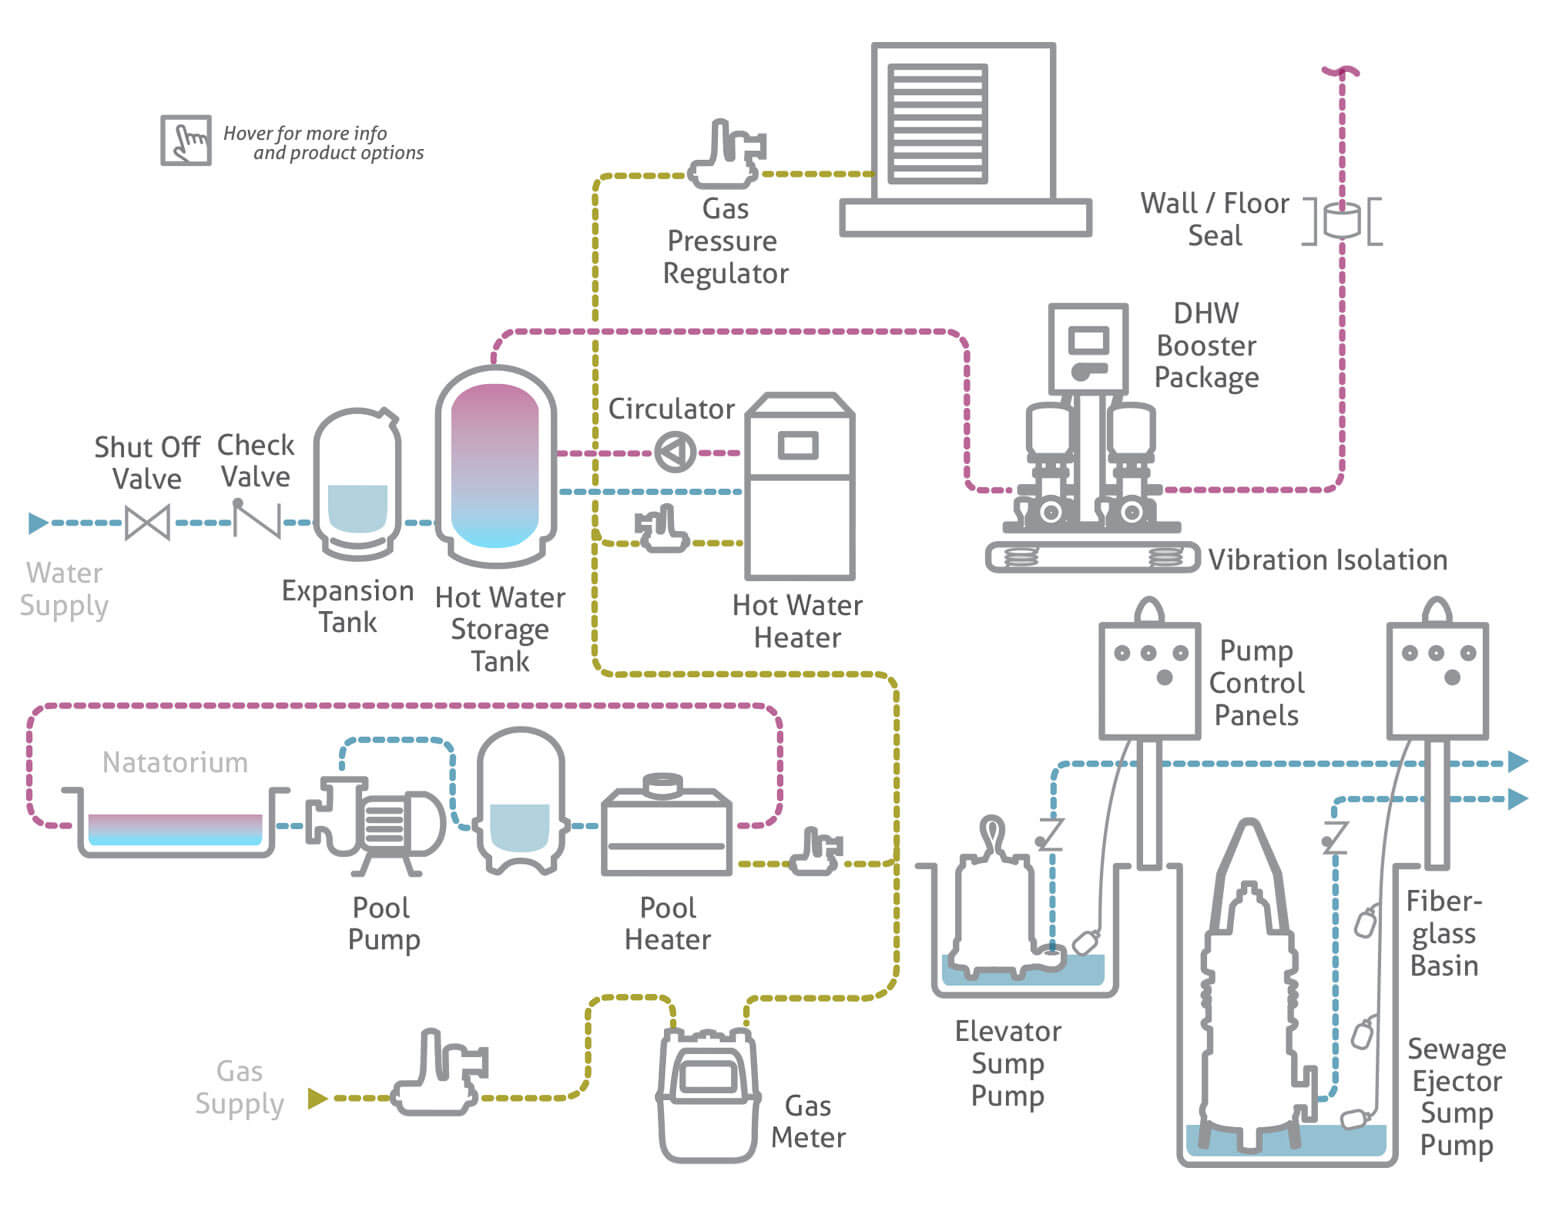 Boiler Piping Diagram With Pump Electric Water Heater Parts Diagram